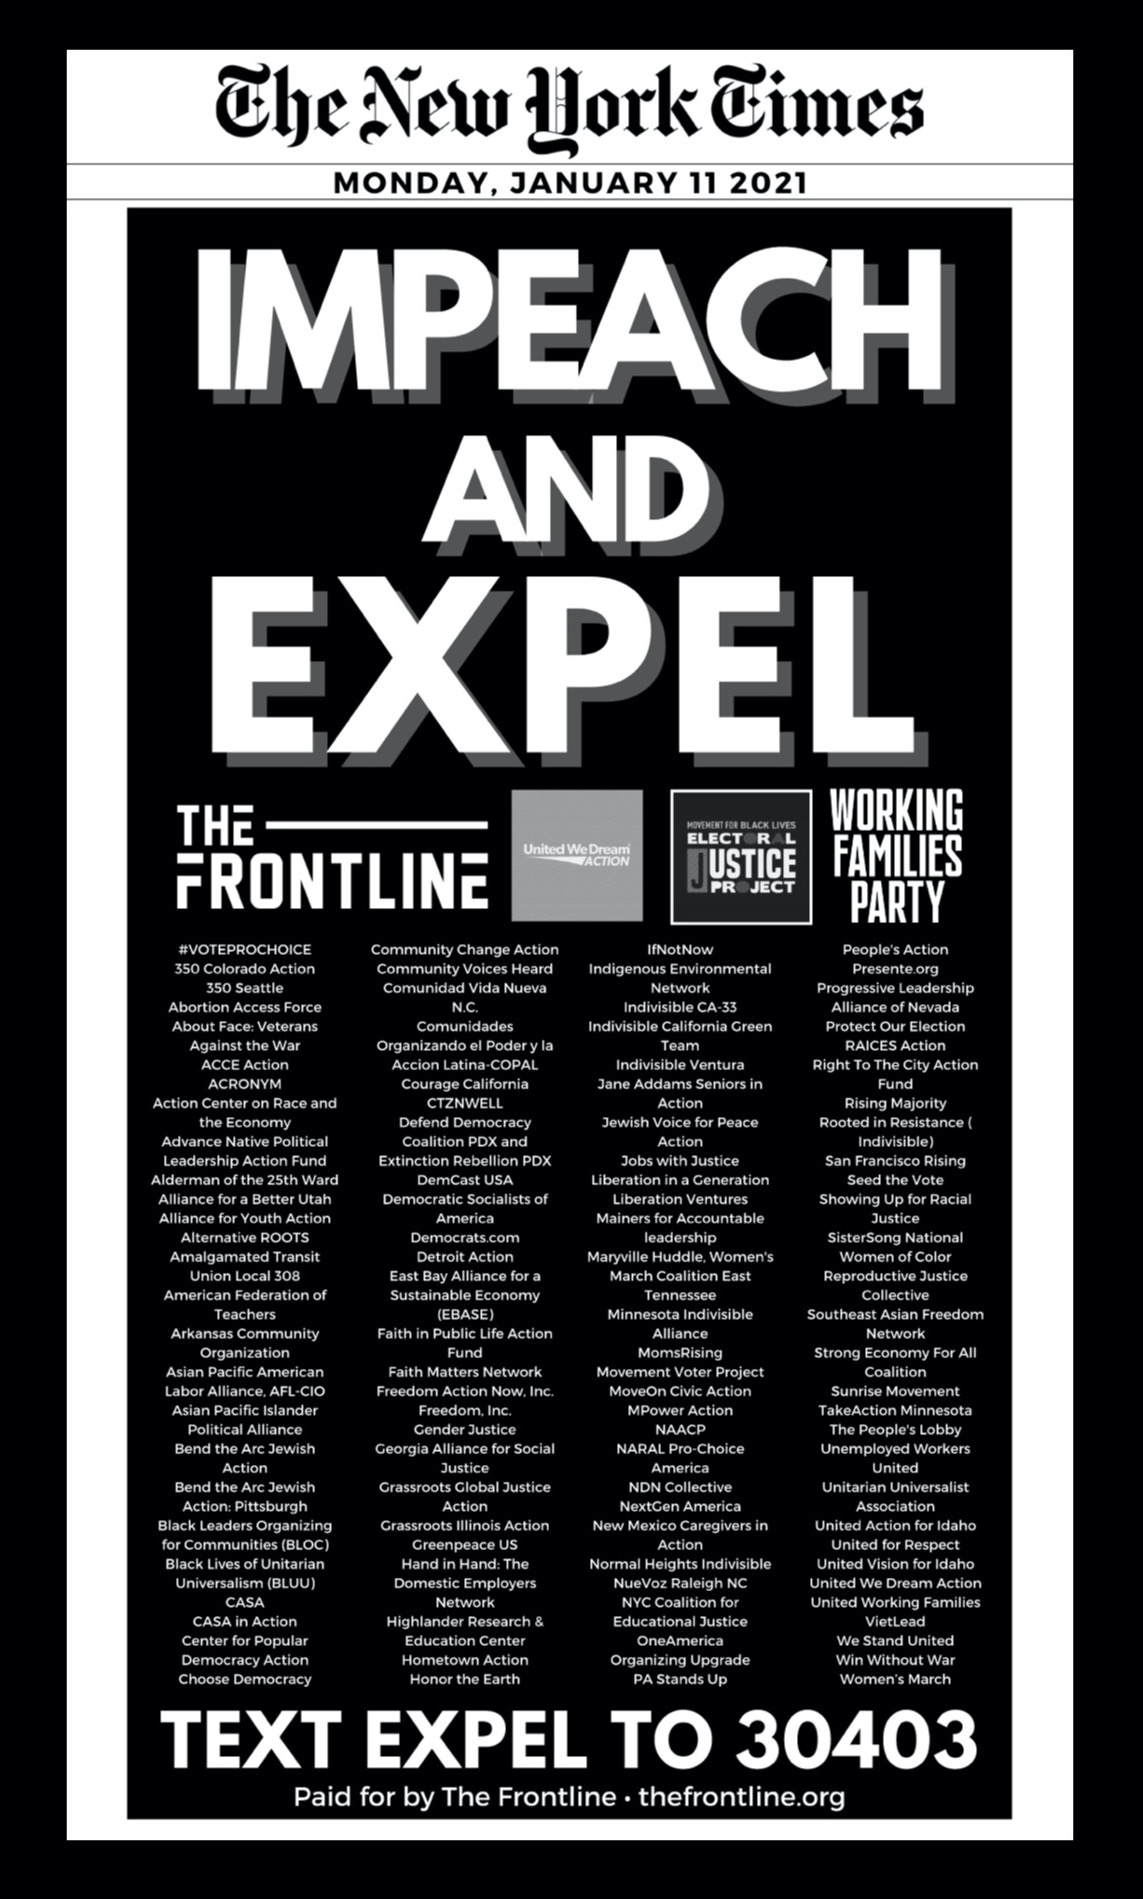 New York Times, Monday Jan 11, 2021 Impeach and Expel. Text EXPEL To 3043